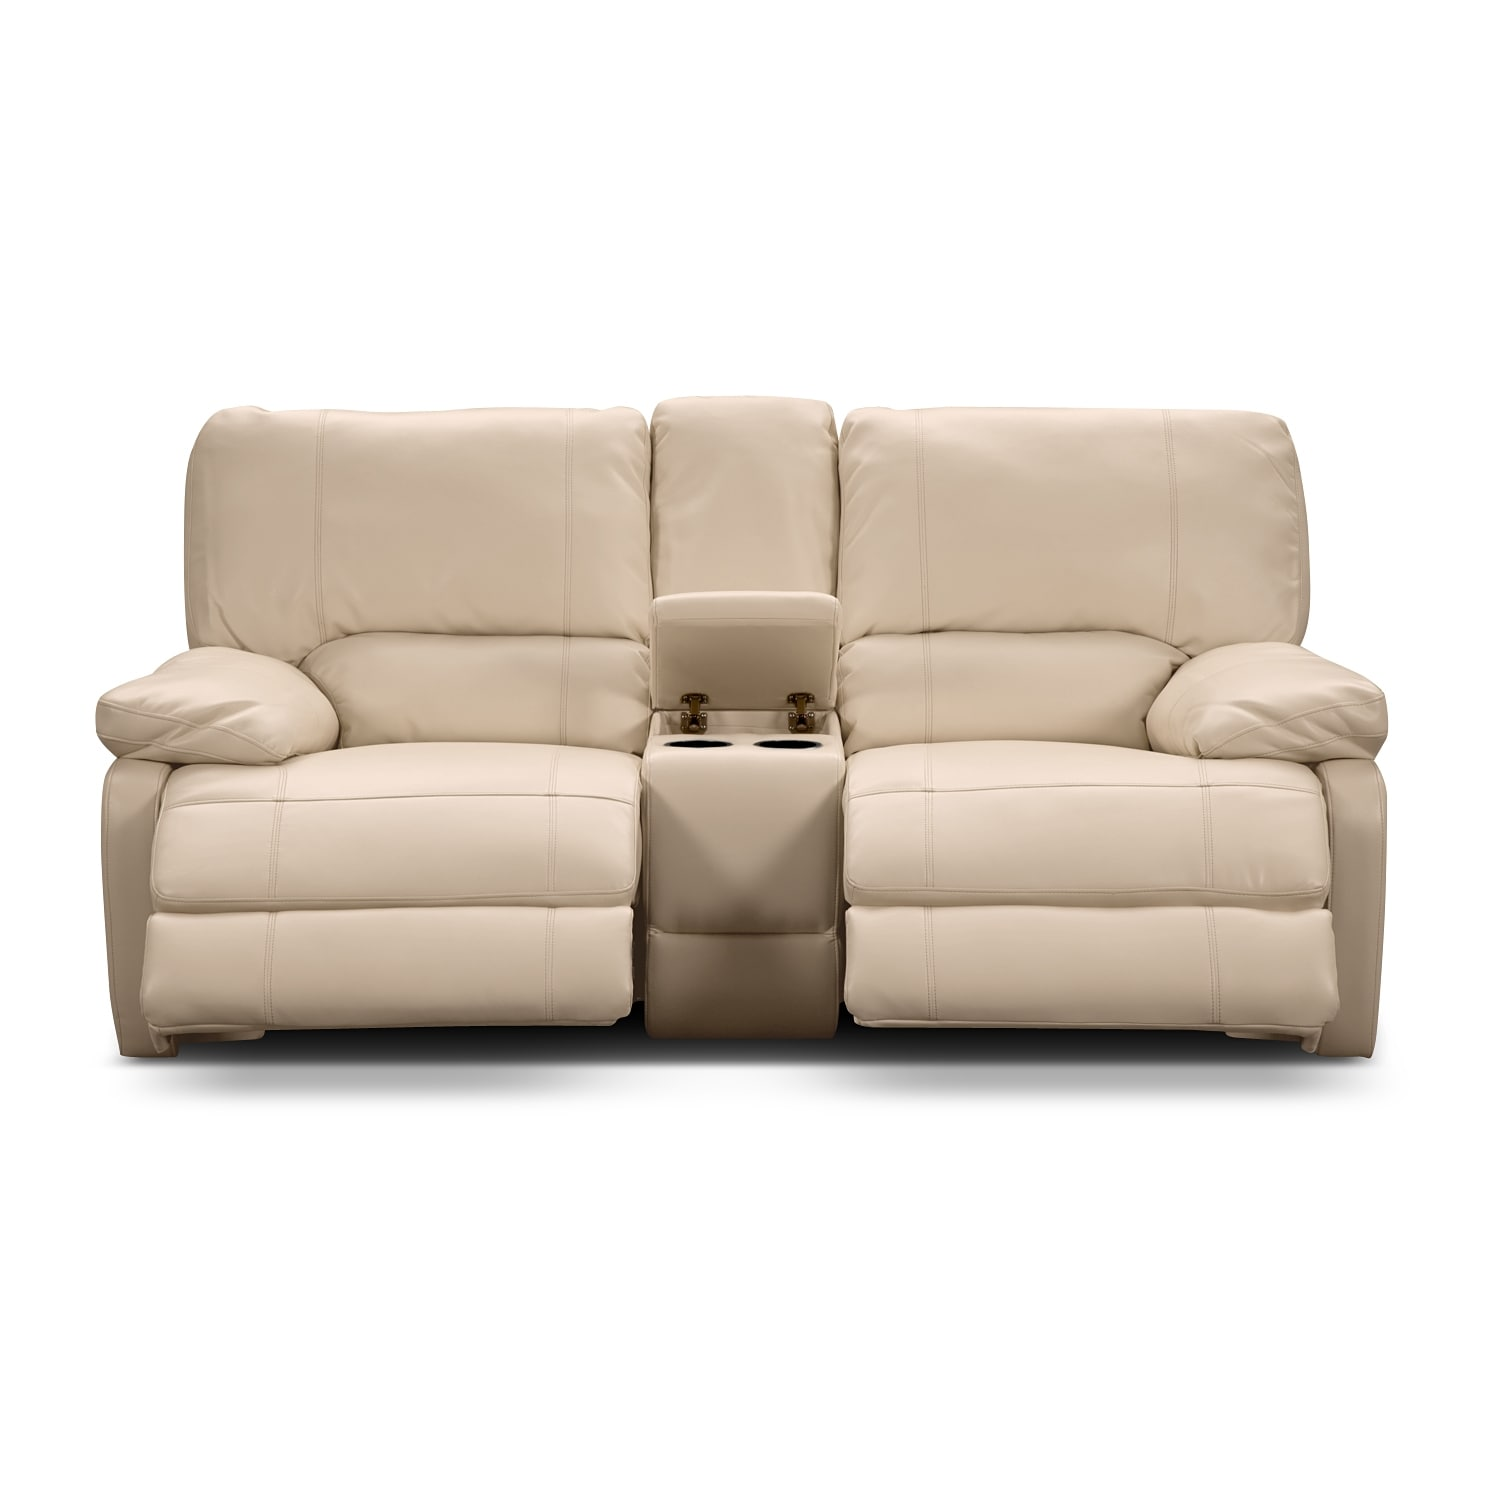 Power reclining sofas and loveseats pictures to pin on Power reclining sofas and loveseats